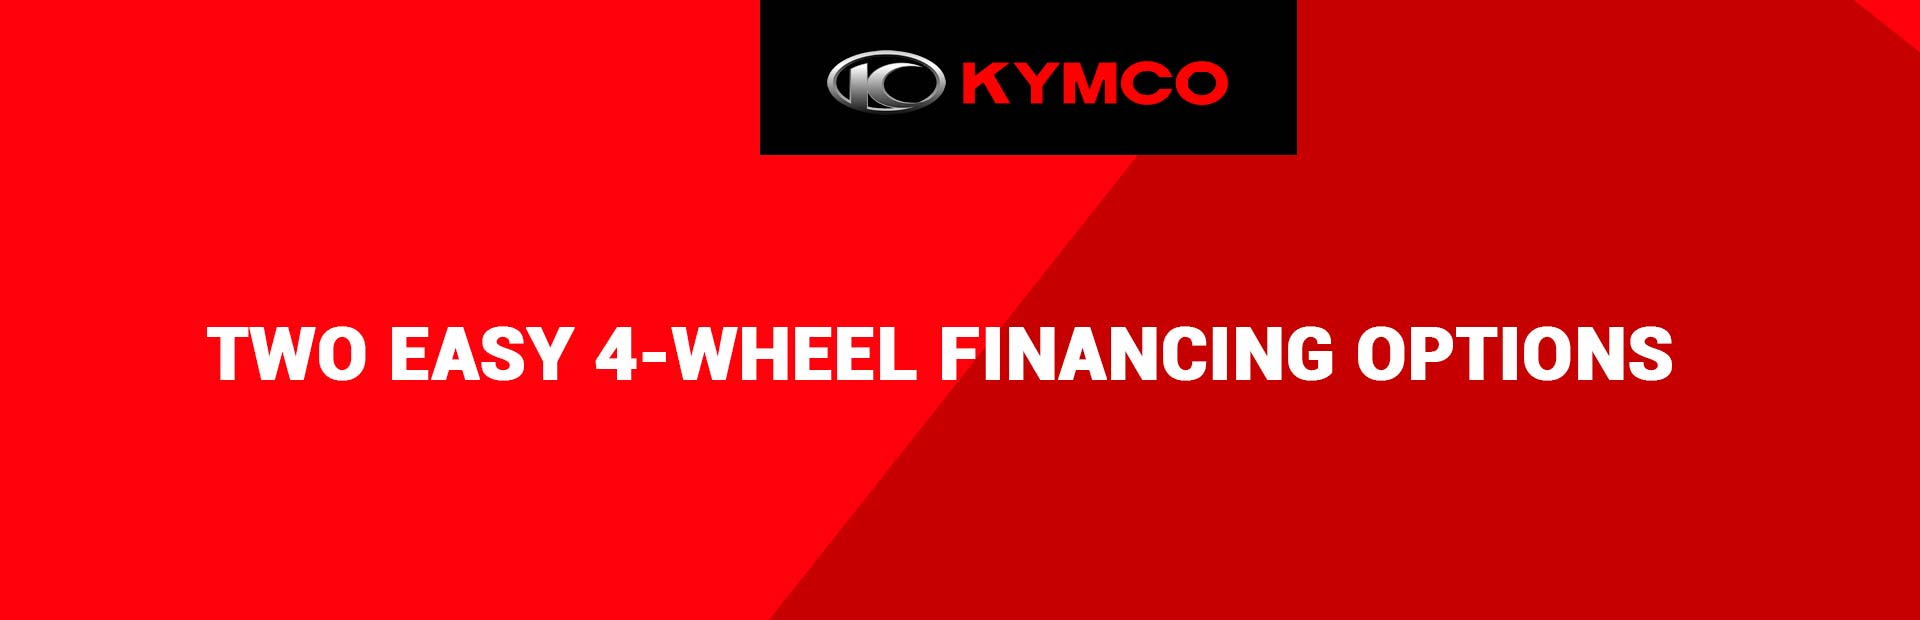 KYMCO - TWO EASY 4-WHEEL FINANCING OPTIONS at Brenny's Motorcycle Clinic, Bettendorf, IA 52722